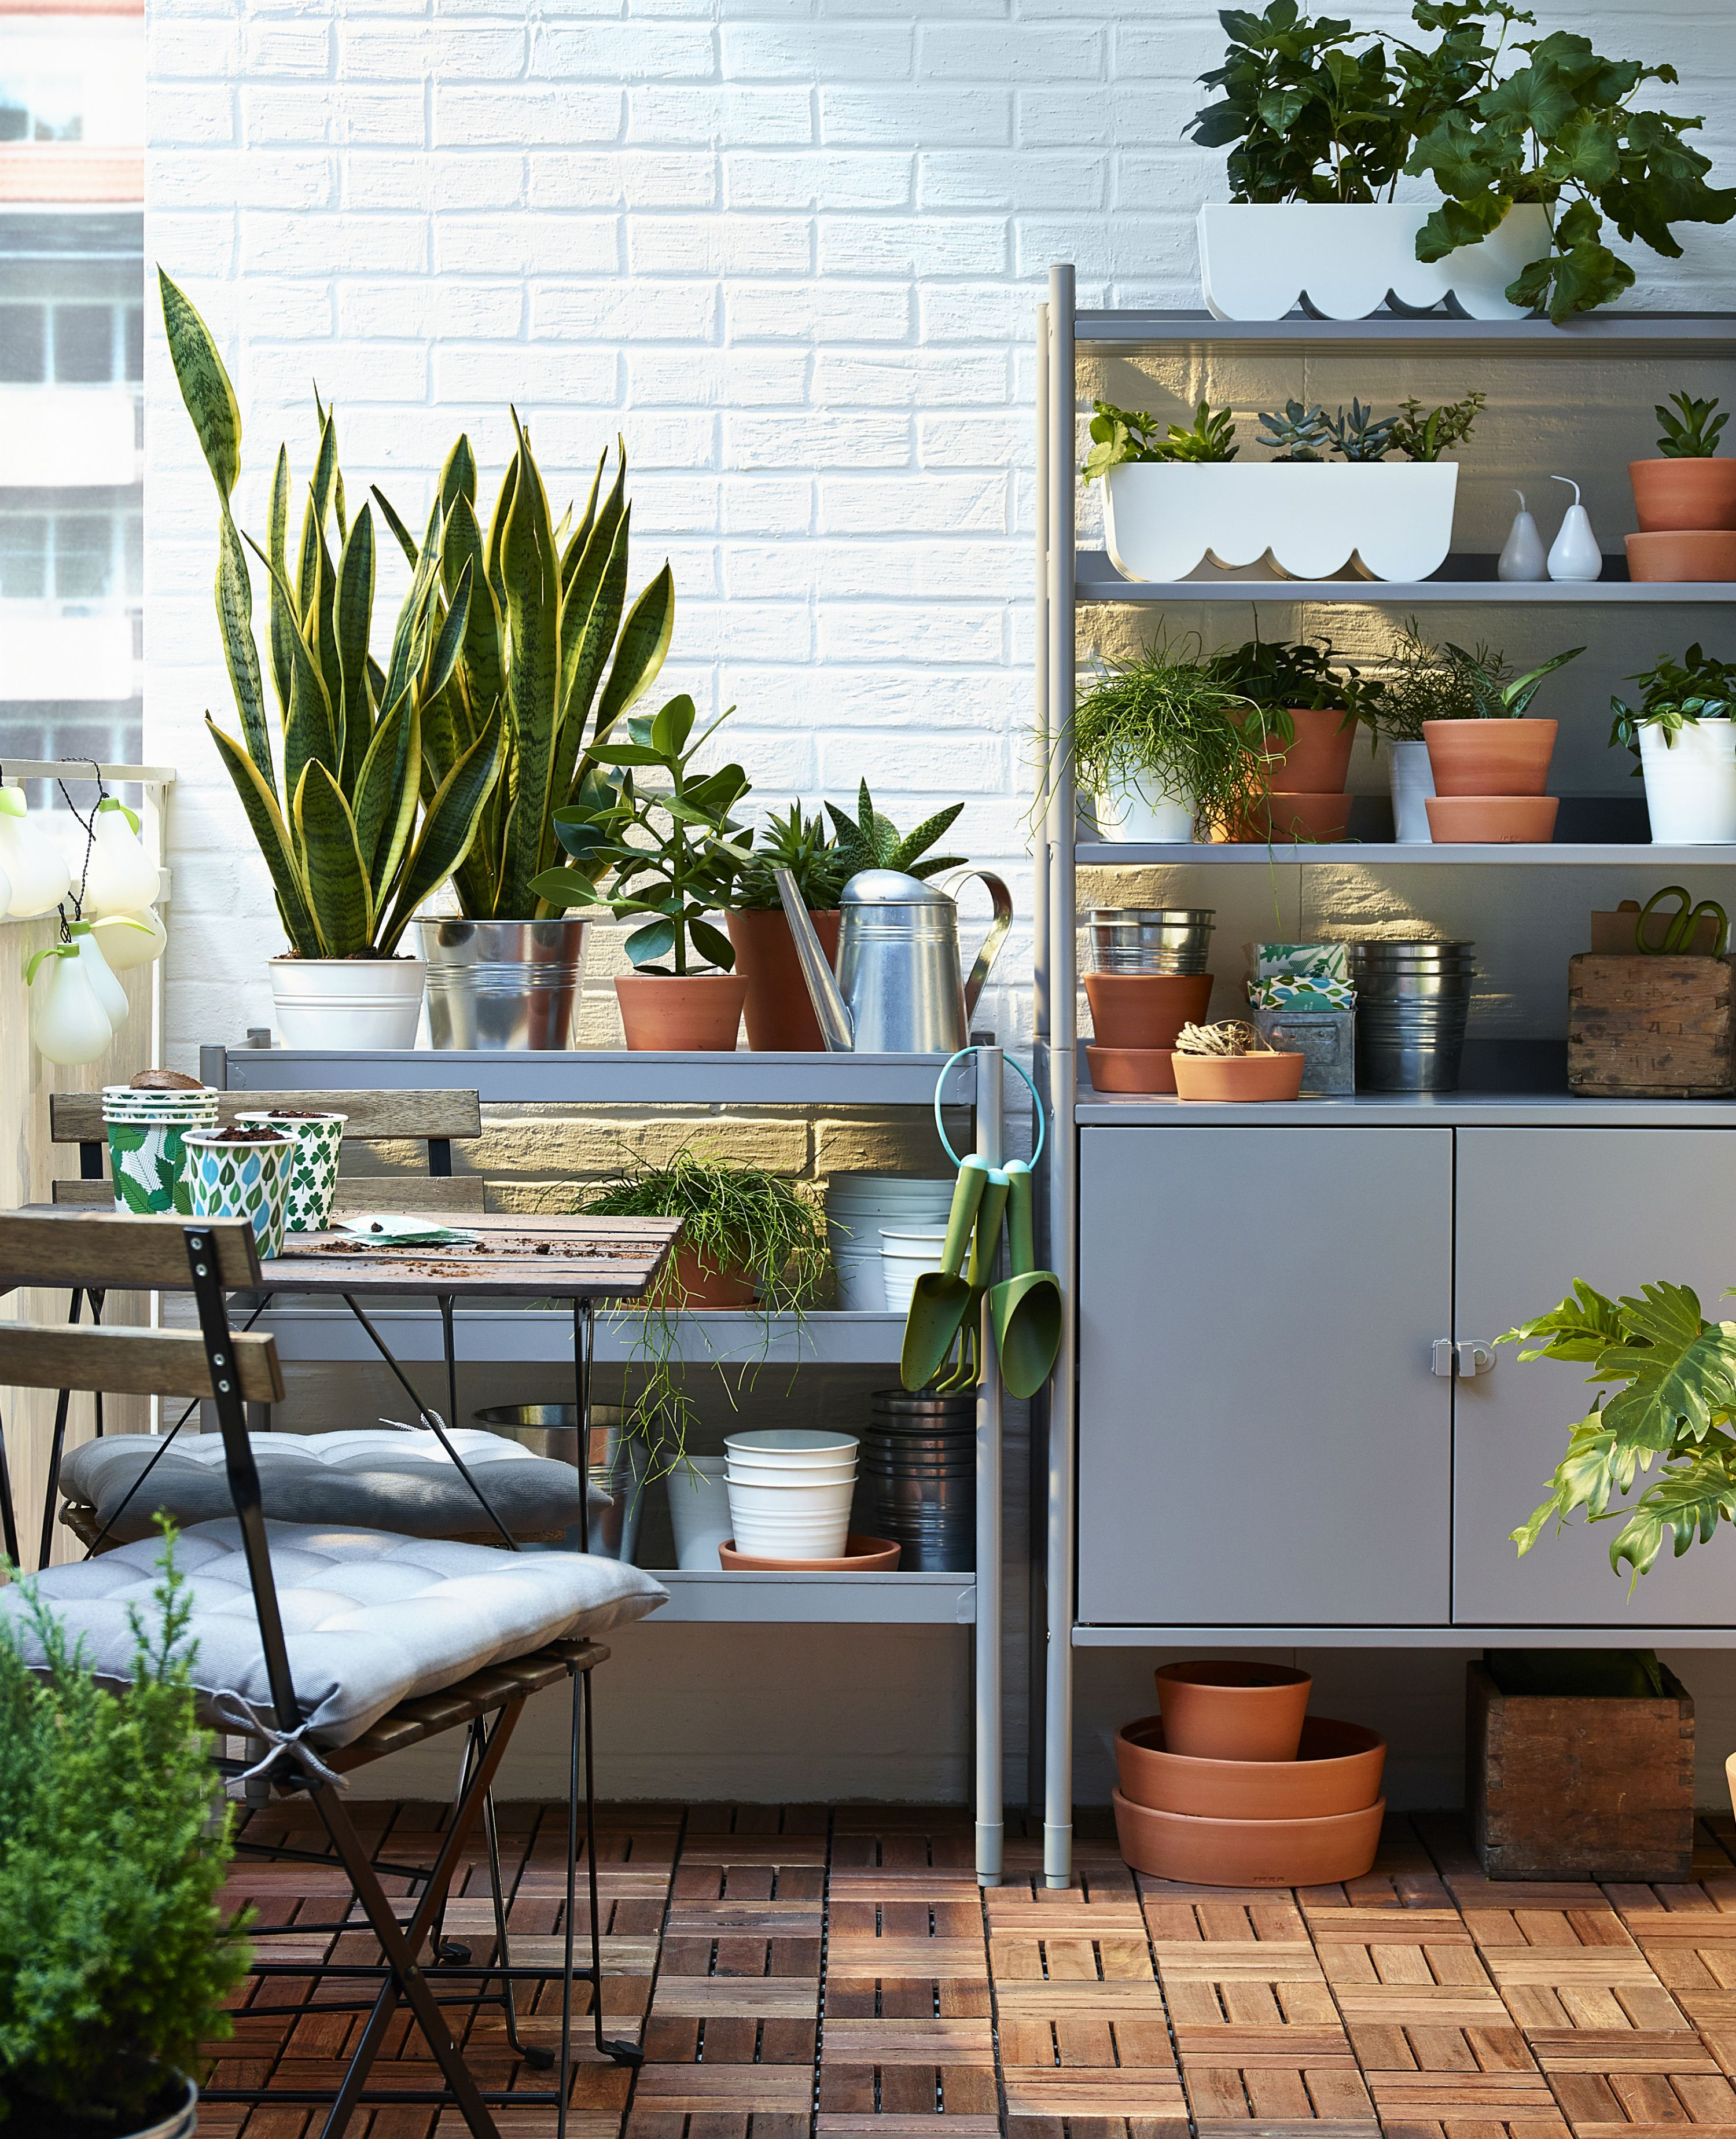 Make The Most Of Your Outdoor Space This Season! Find